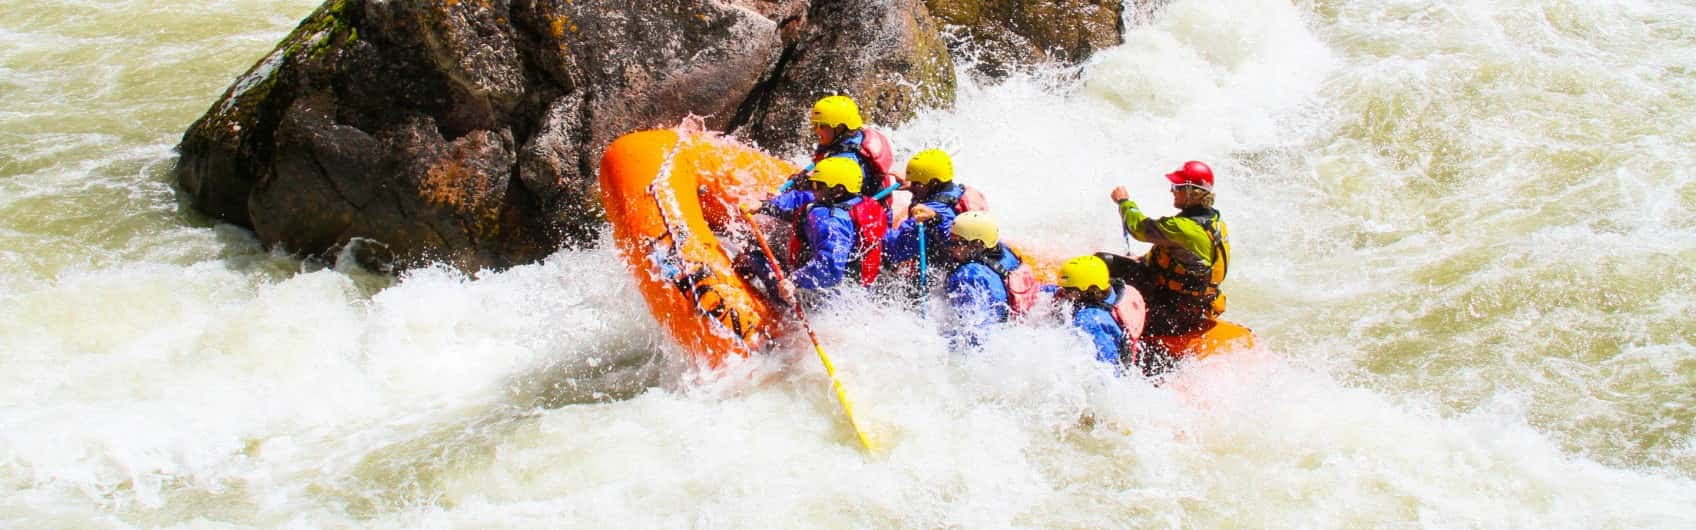 Montana Whitewater, Rafting, Gallatin Canyon, Guided Adventure